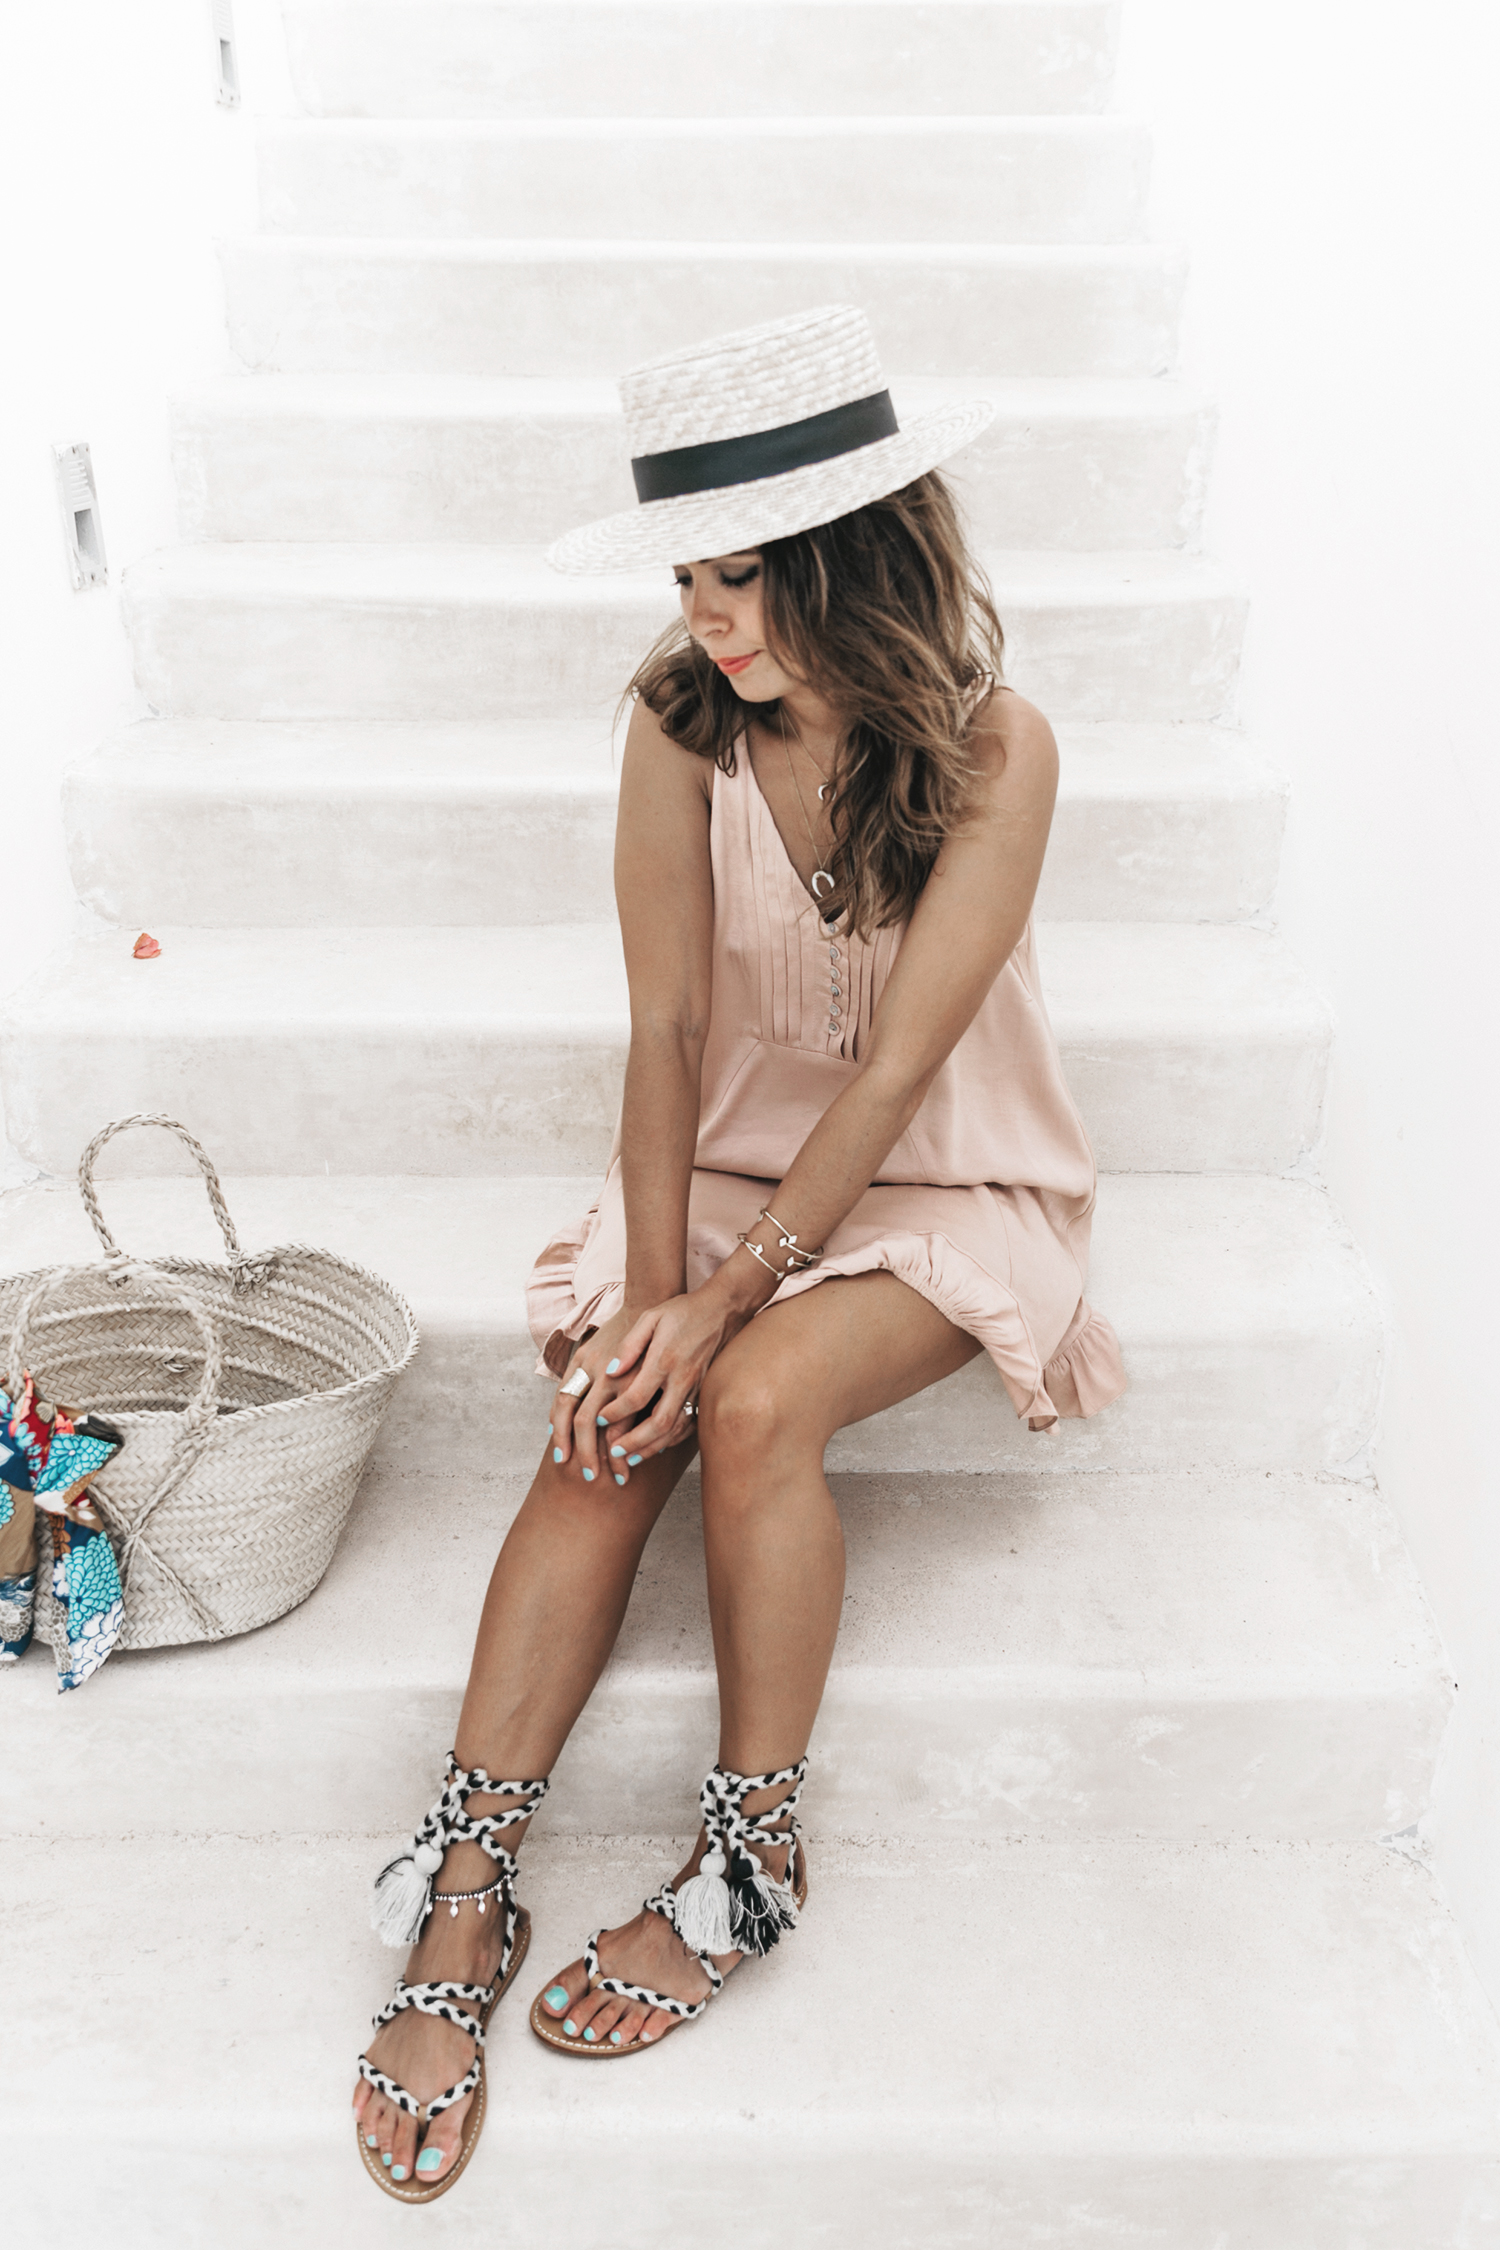 Soludos-Soludos_Escapes-Light_Pink_Dress-Knotted_Sandals-Mykonos-Greece-Collage_Vintage-Summer_Outfit-Street_Style-41